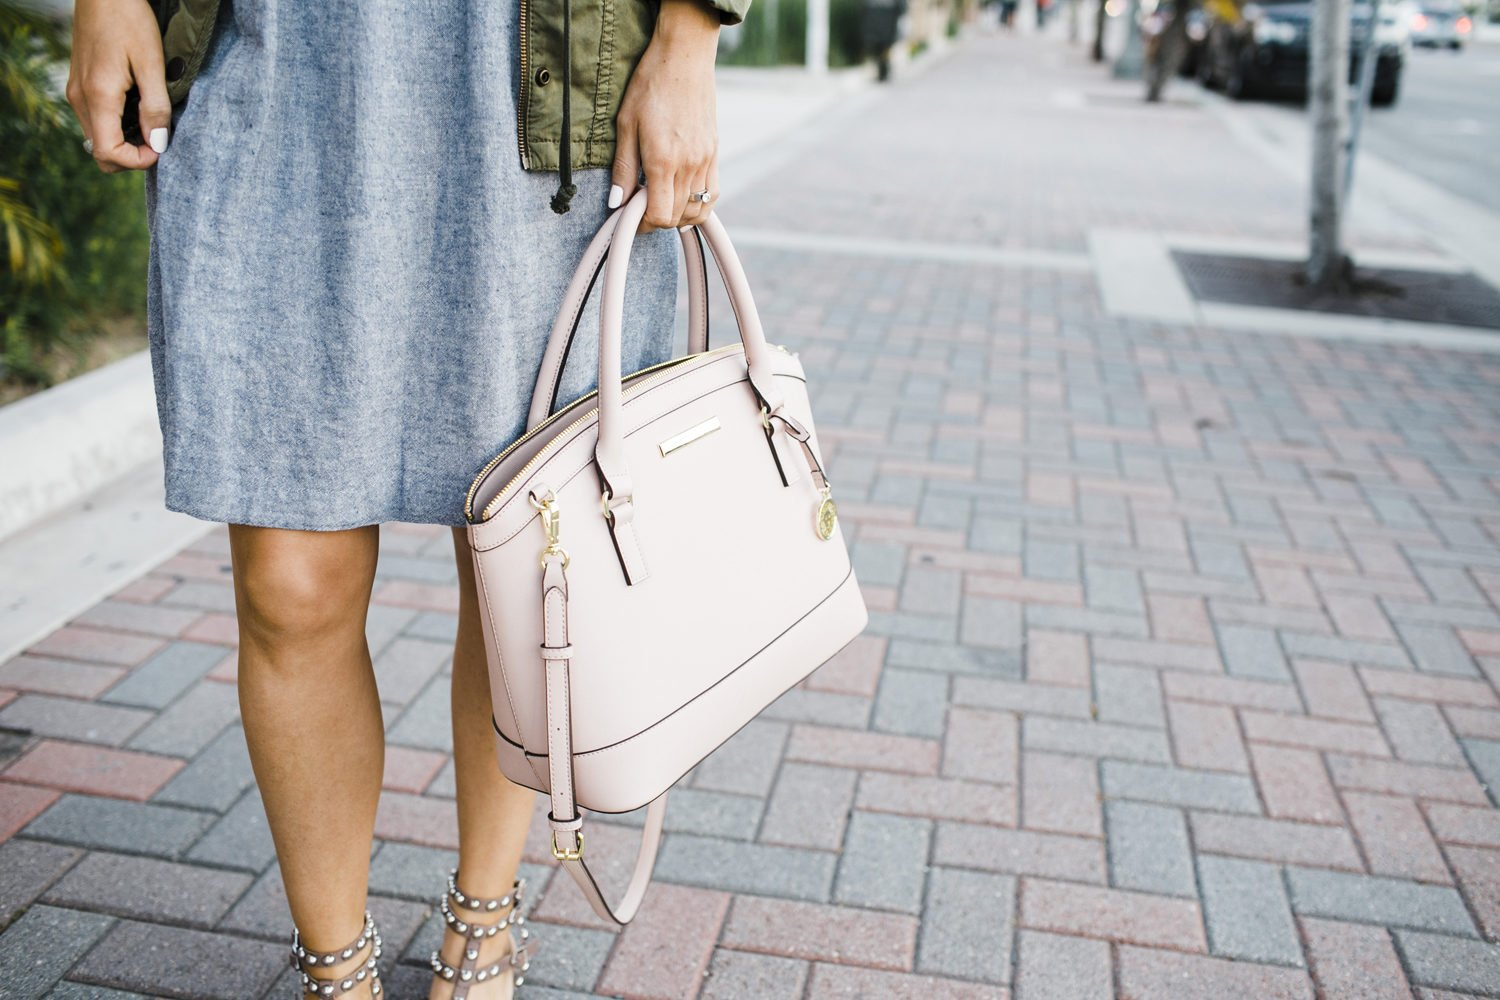 Merrick's Art Ann Klein Blush Bag